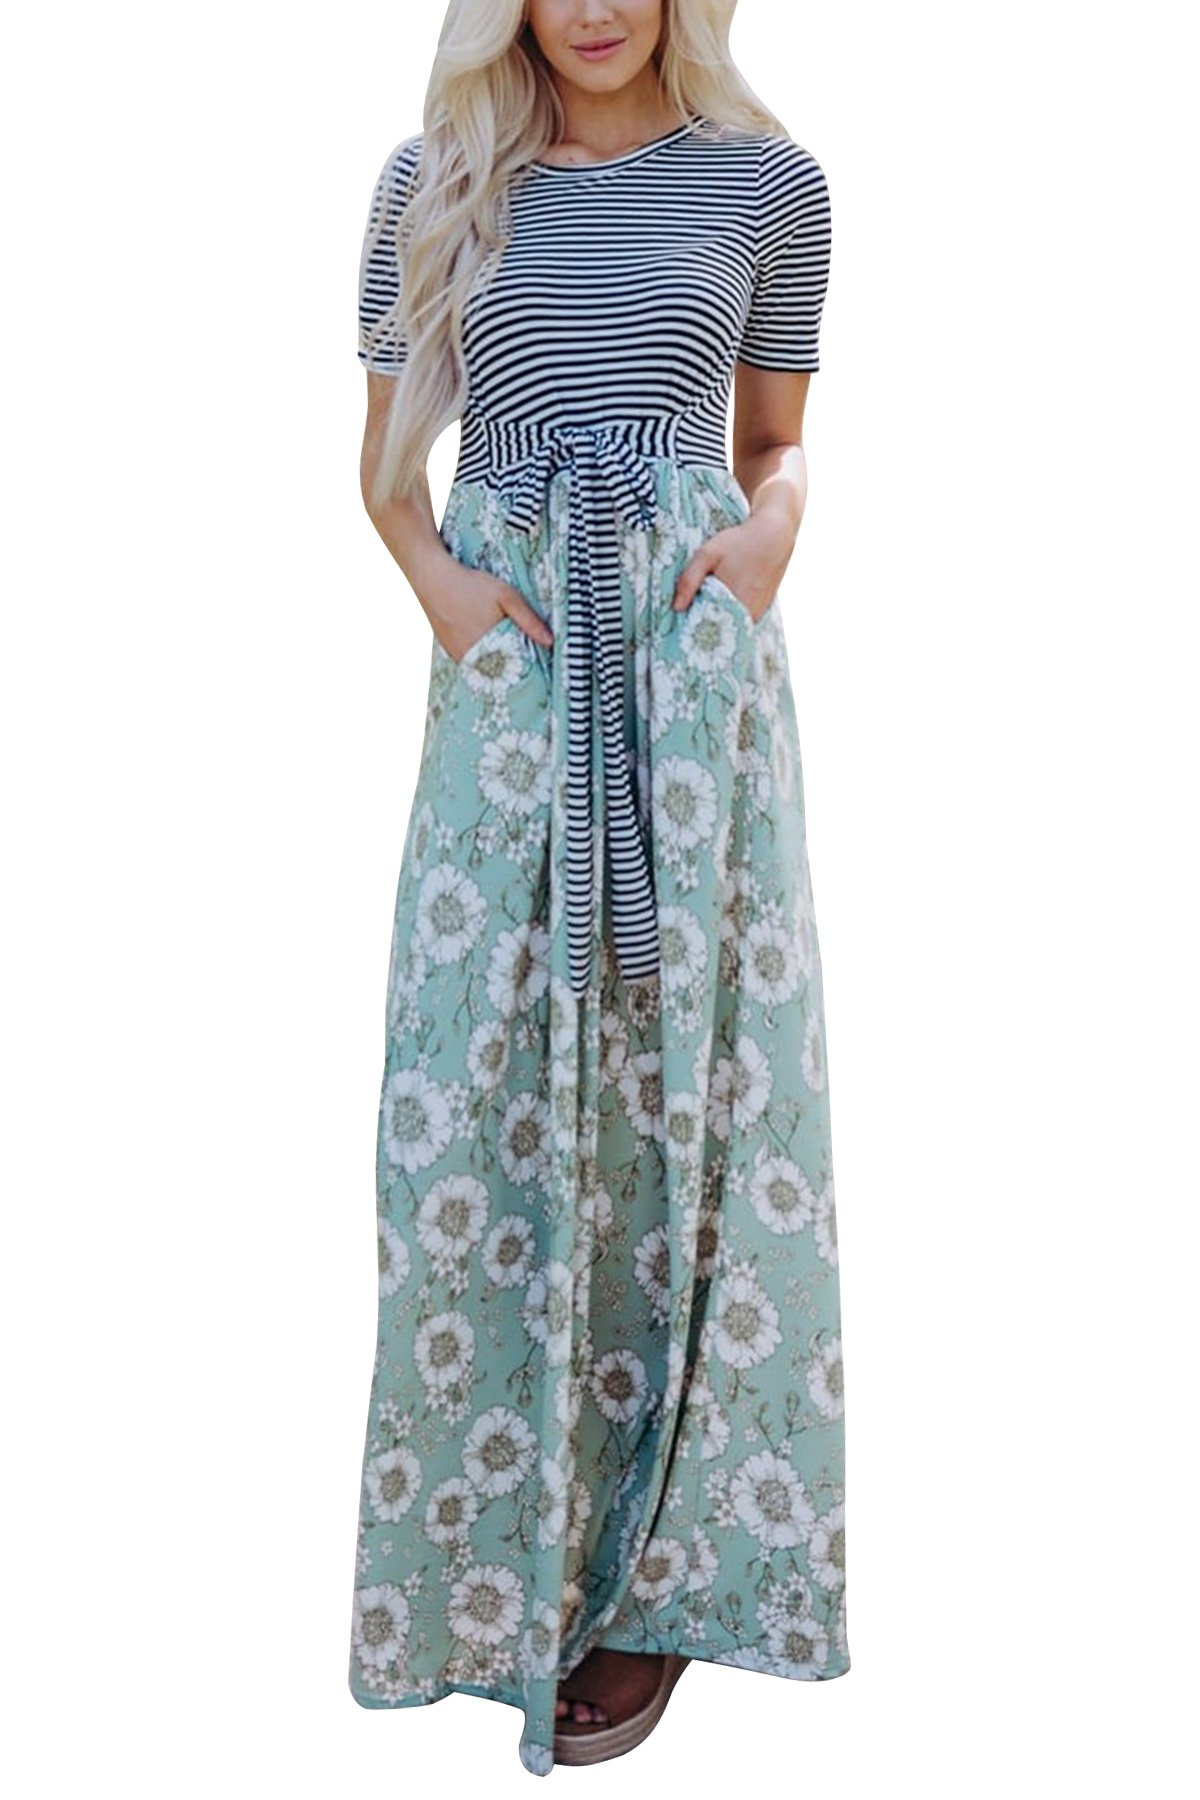 JOXJOZ Women's Casual Maxi Dress with Sleeves Striped Floral Long Party Dresses with Pockets ((Short Sleeve) Green, L)